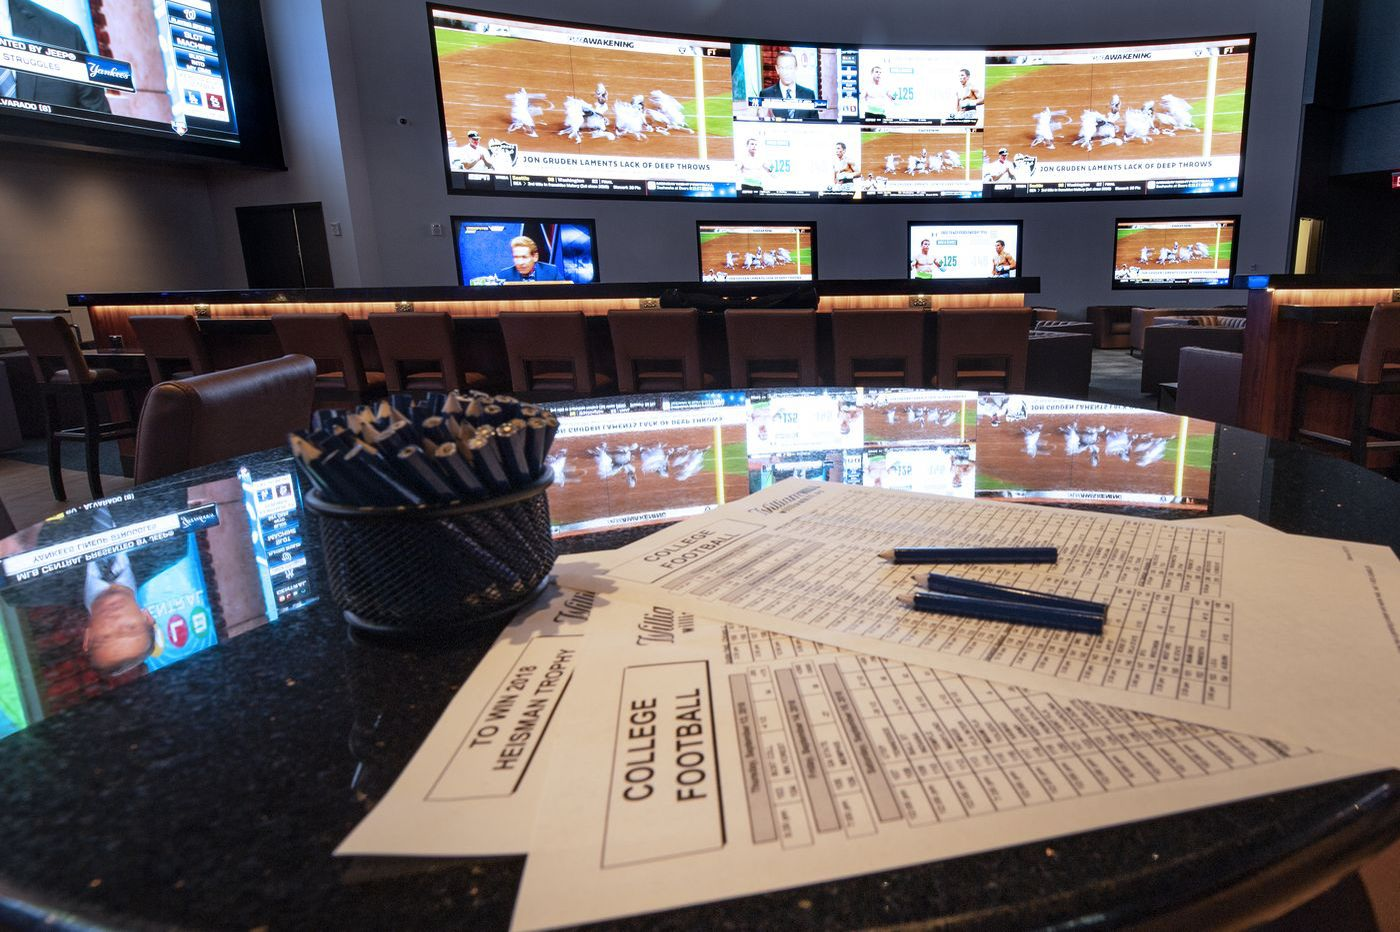 Colleges fear sports betting will lead to cheating, Philadelphia Archdiocese to host vigil to atone for sex abuse | Morning Newsletter